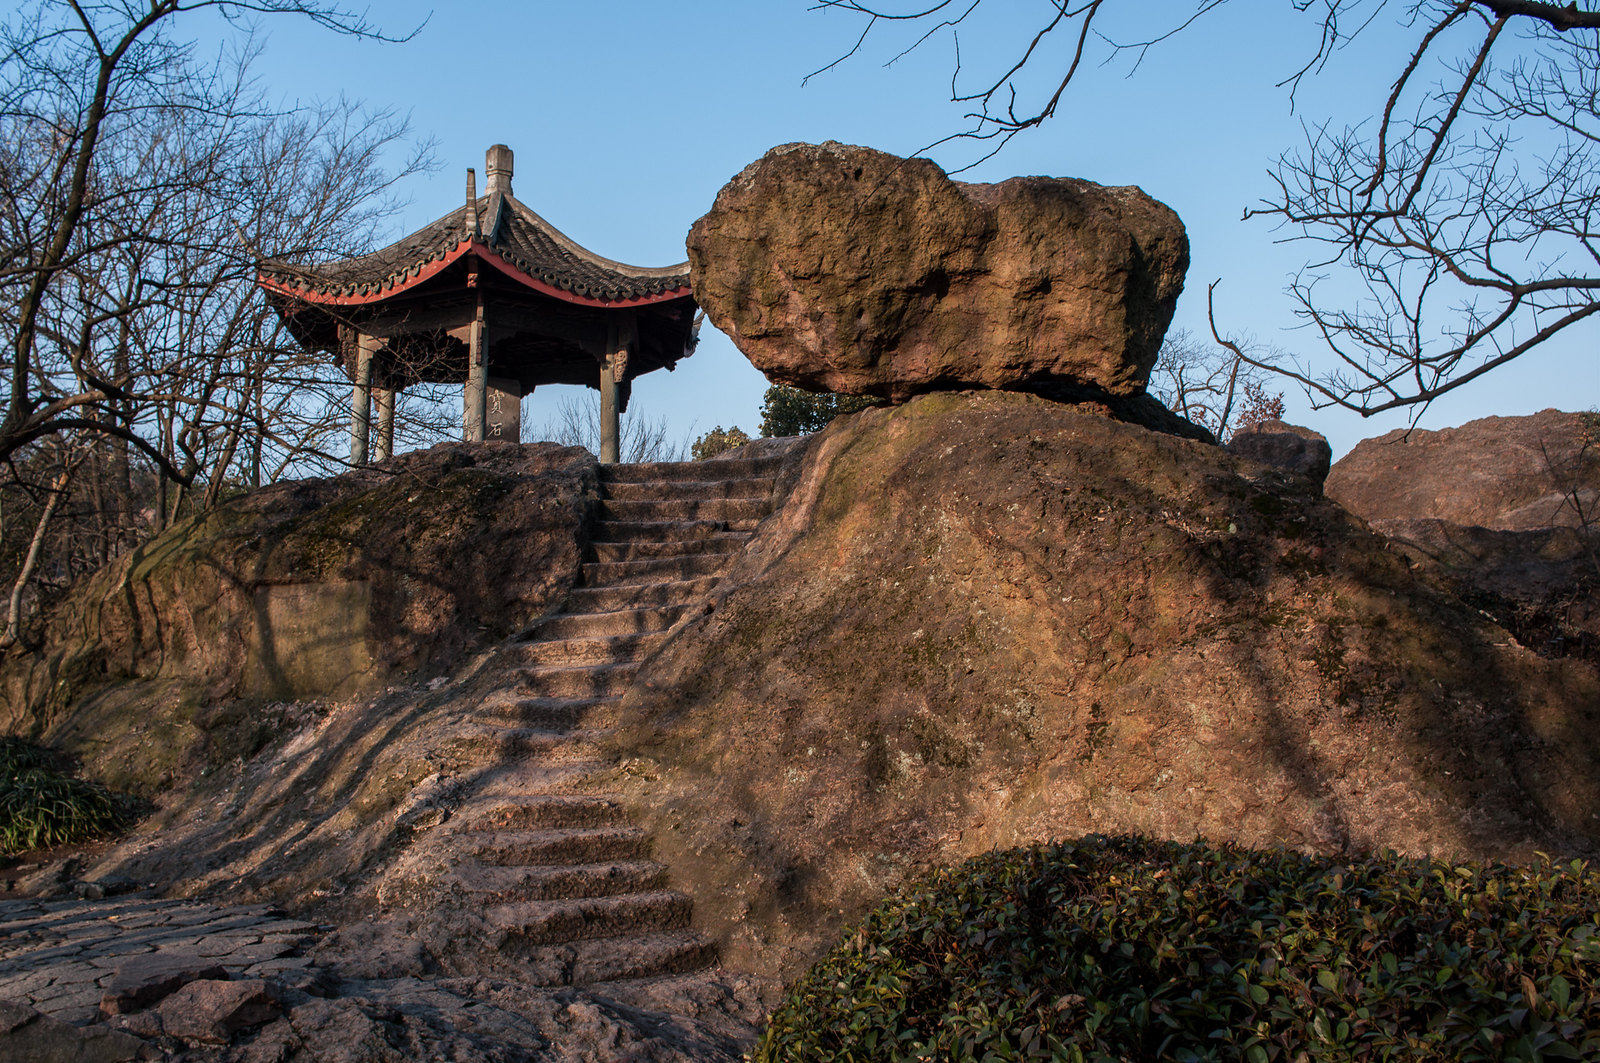 宝石山 Stone mountain, Hangzhou